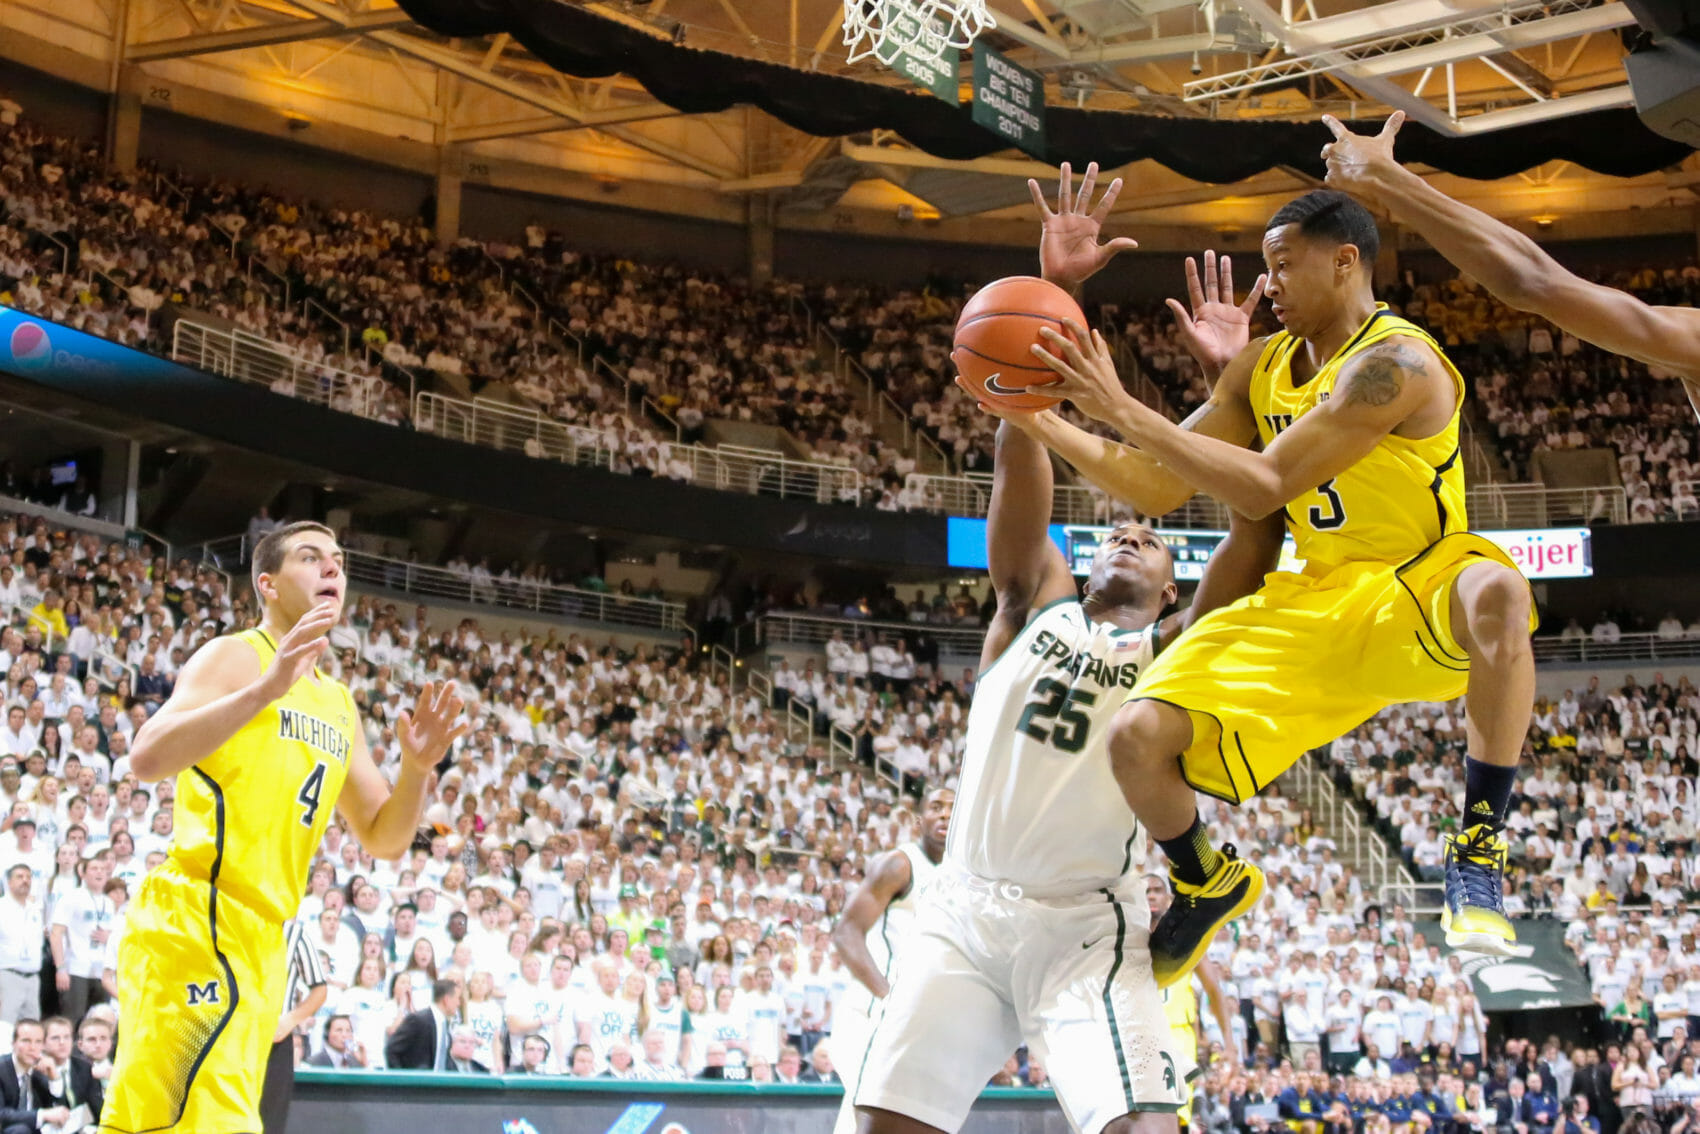 Michigan State 75, Michigan 52-5